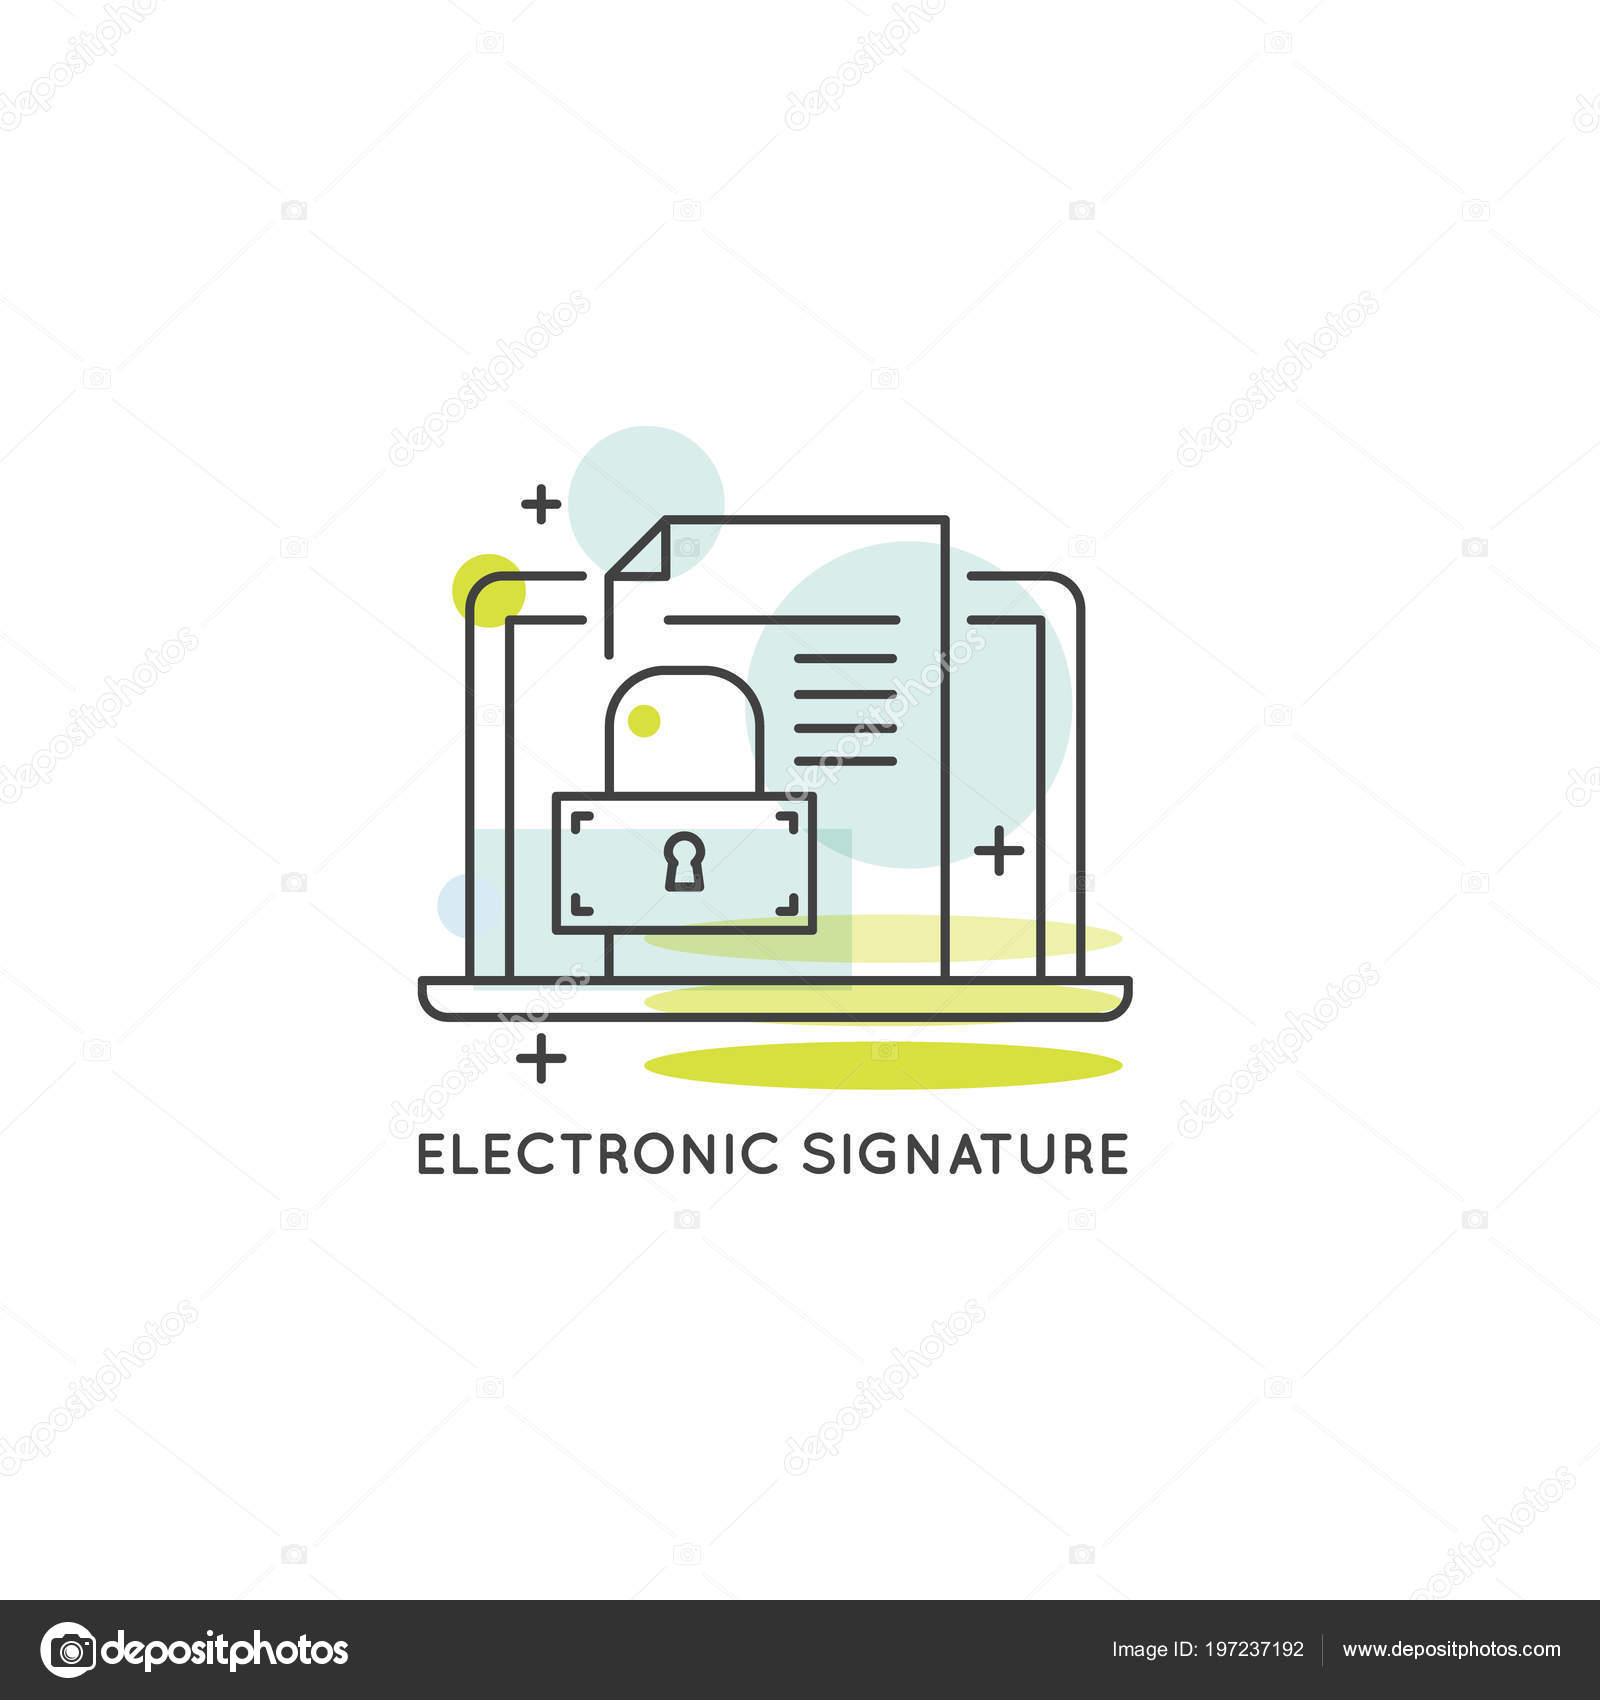 Vector Icon Style Illustration Electronic Signature Concept Data Protection Services Service Stock